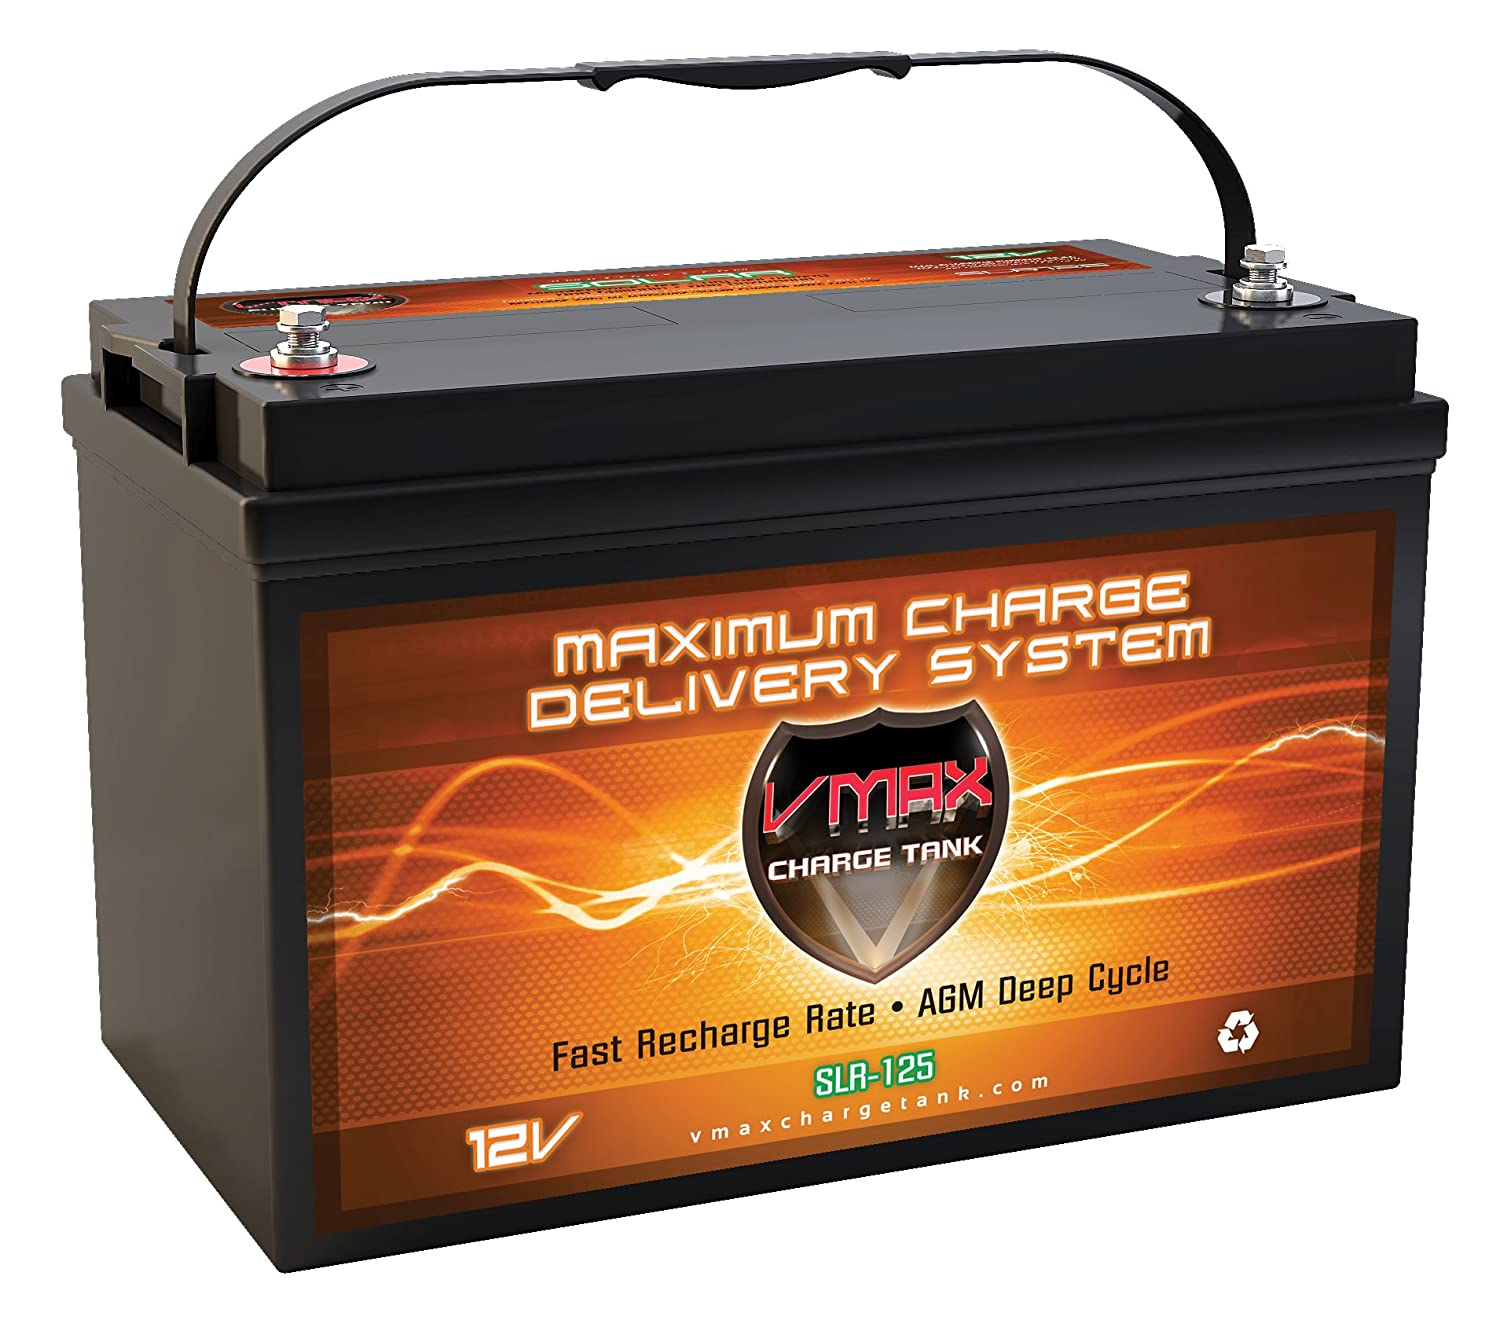 Best performance RV deep cycle battery is the VMAX SLR125 AGM Deep Cycle Battery